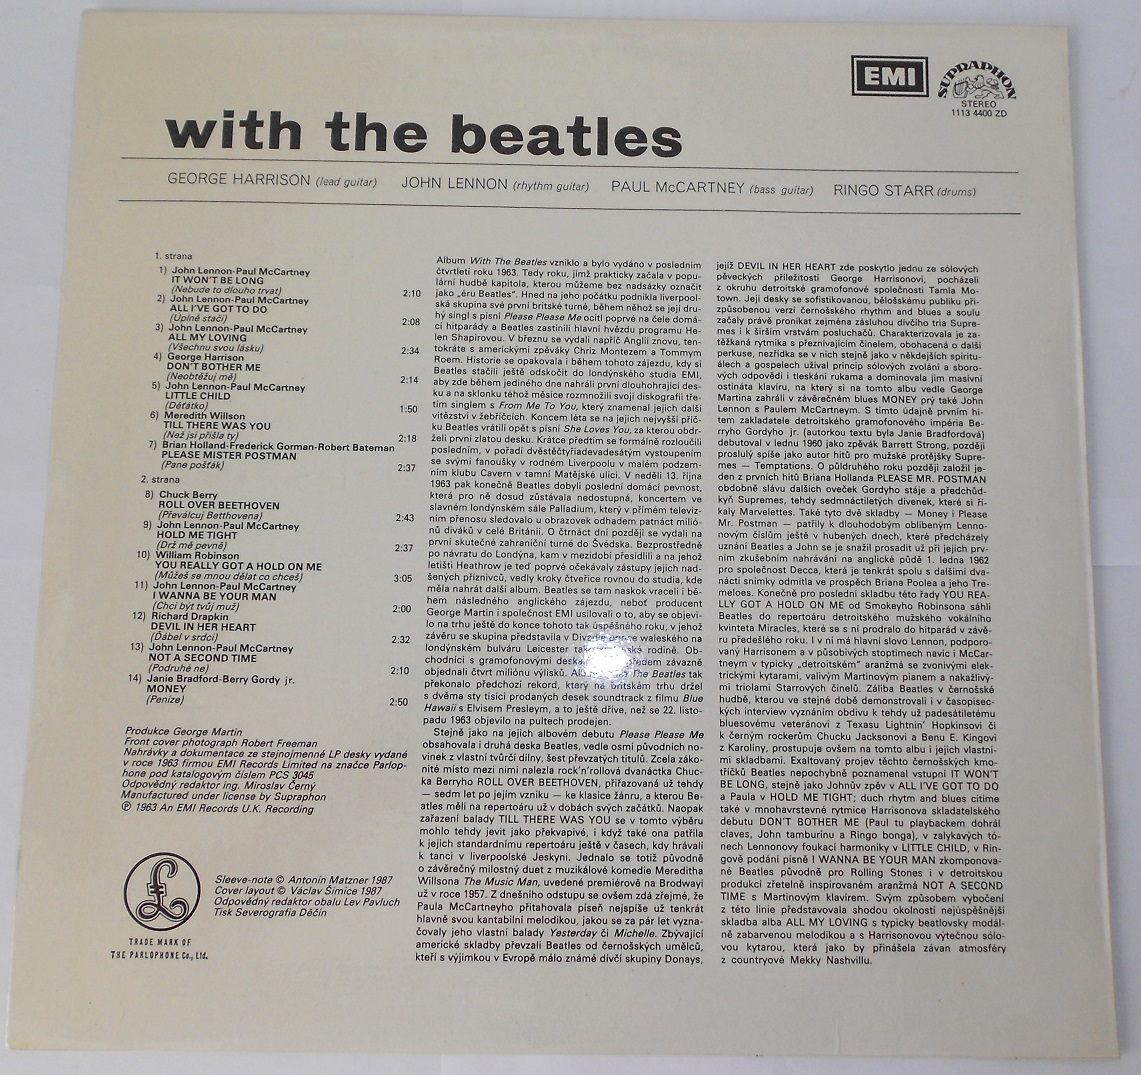 The Beatles - With The Beatles (Supr) (LP)